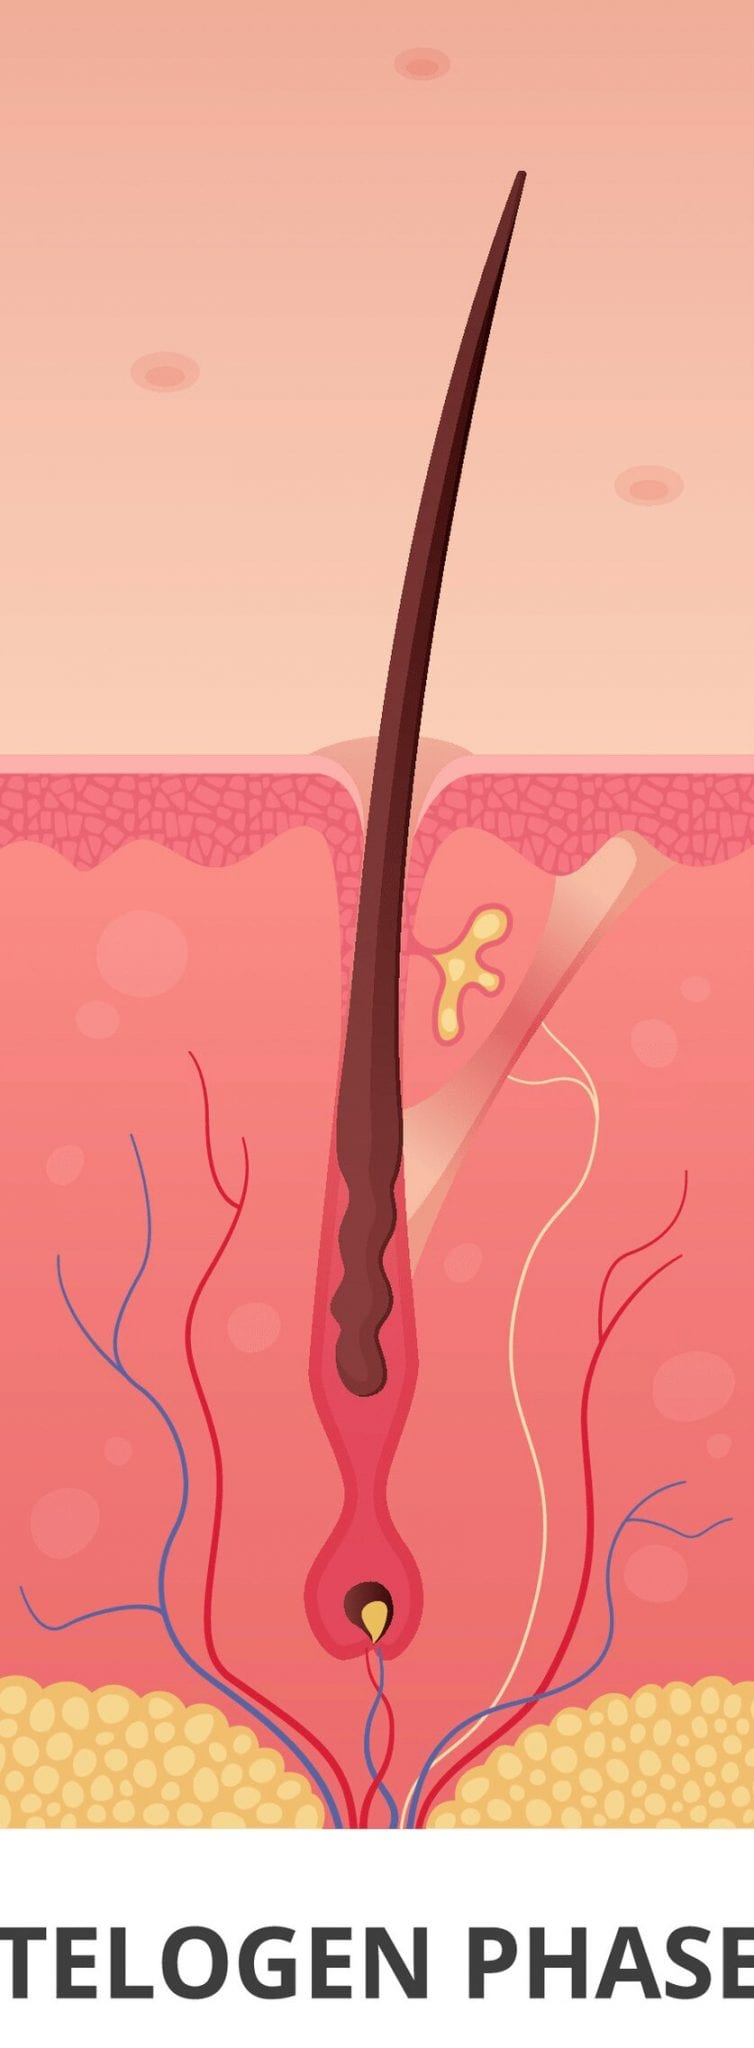 The telogen phase of the hair growth cycle